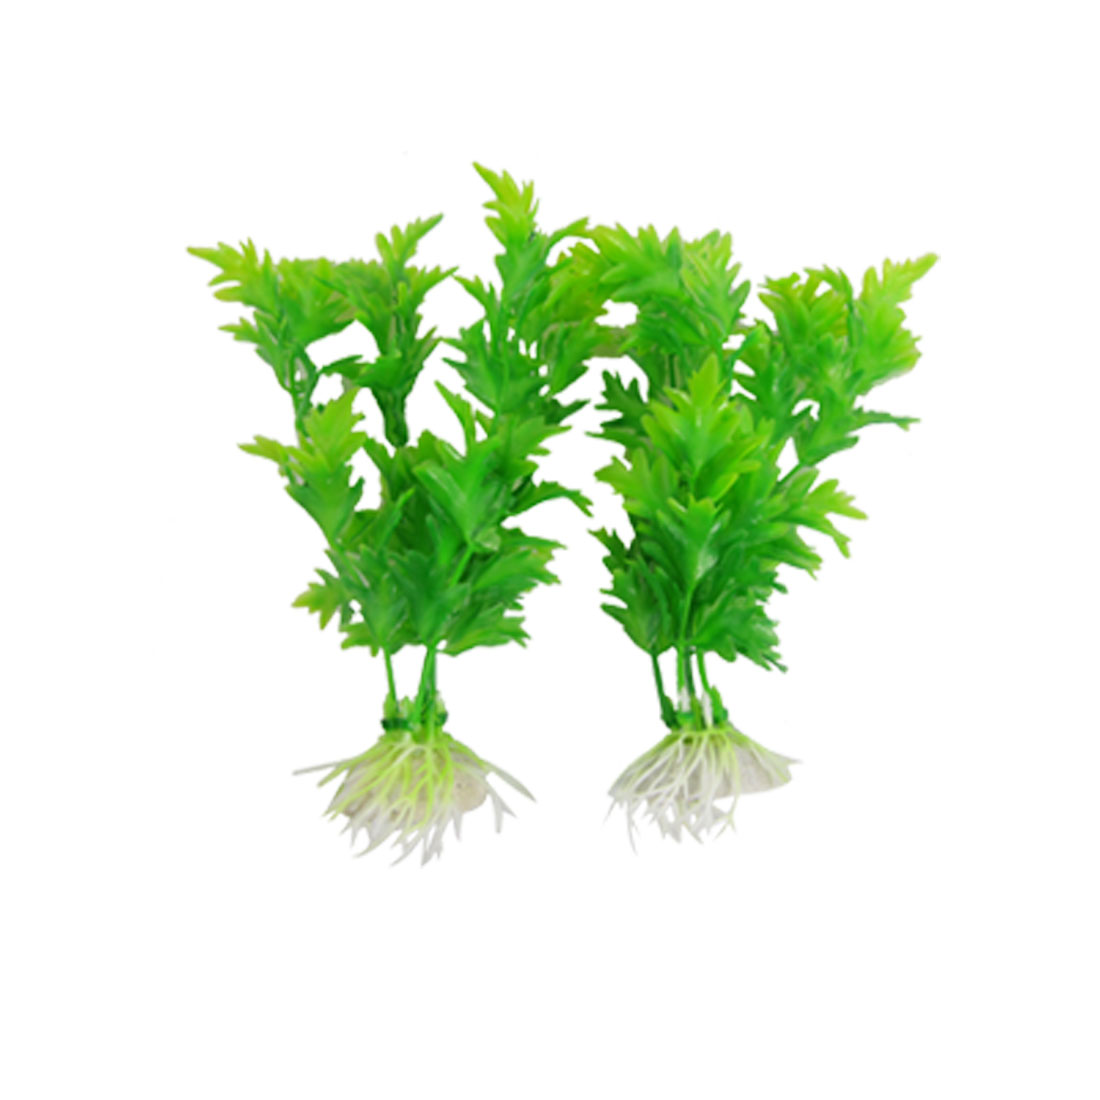 2 Pcs Aquarium Emulational Ornament Green Plastic Water Plants